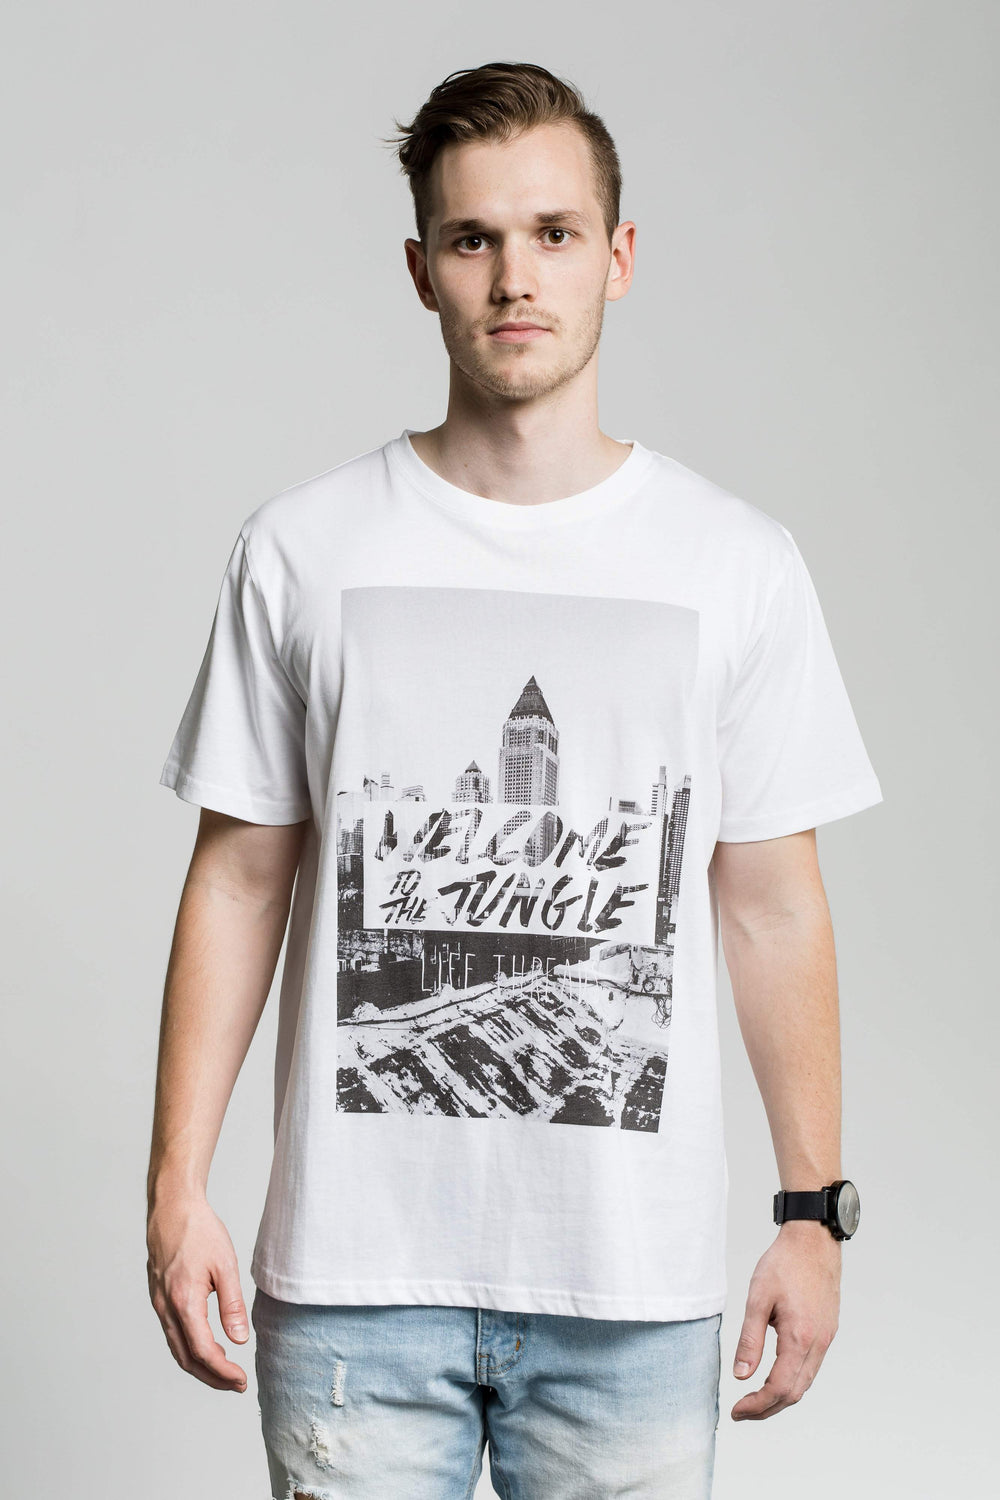 Welcome to the Jungle - Fairtrade & Organic T-Shirt - Fair Trade Clothing by Life Threads